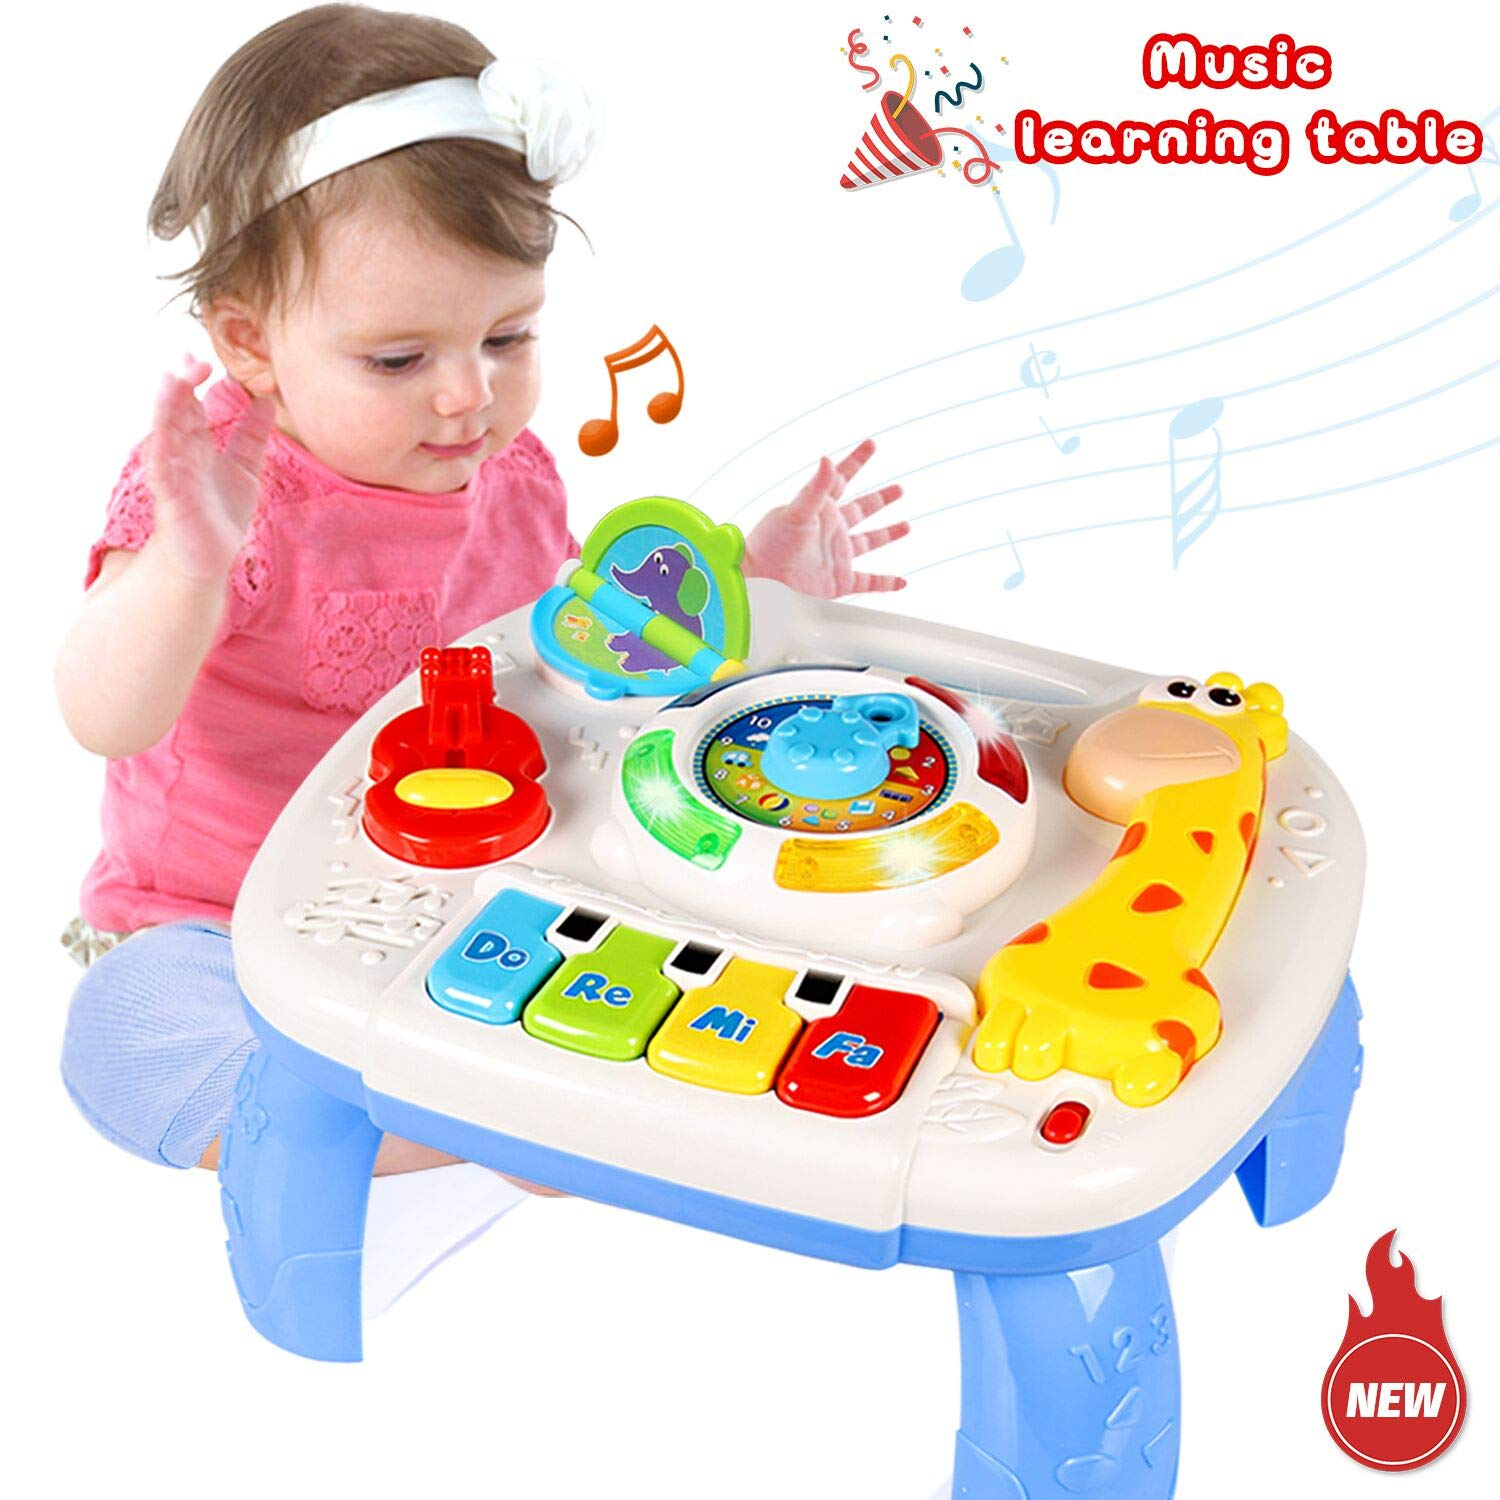 Play Learn Driver Baby Musical Toy Steering Wheel Sounds Toddler Early Learning